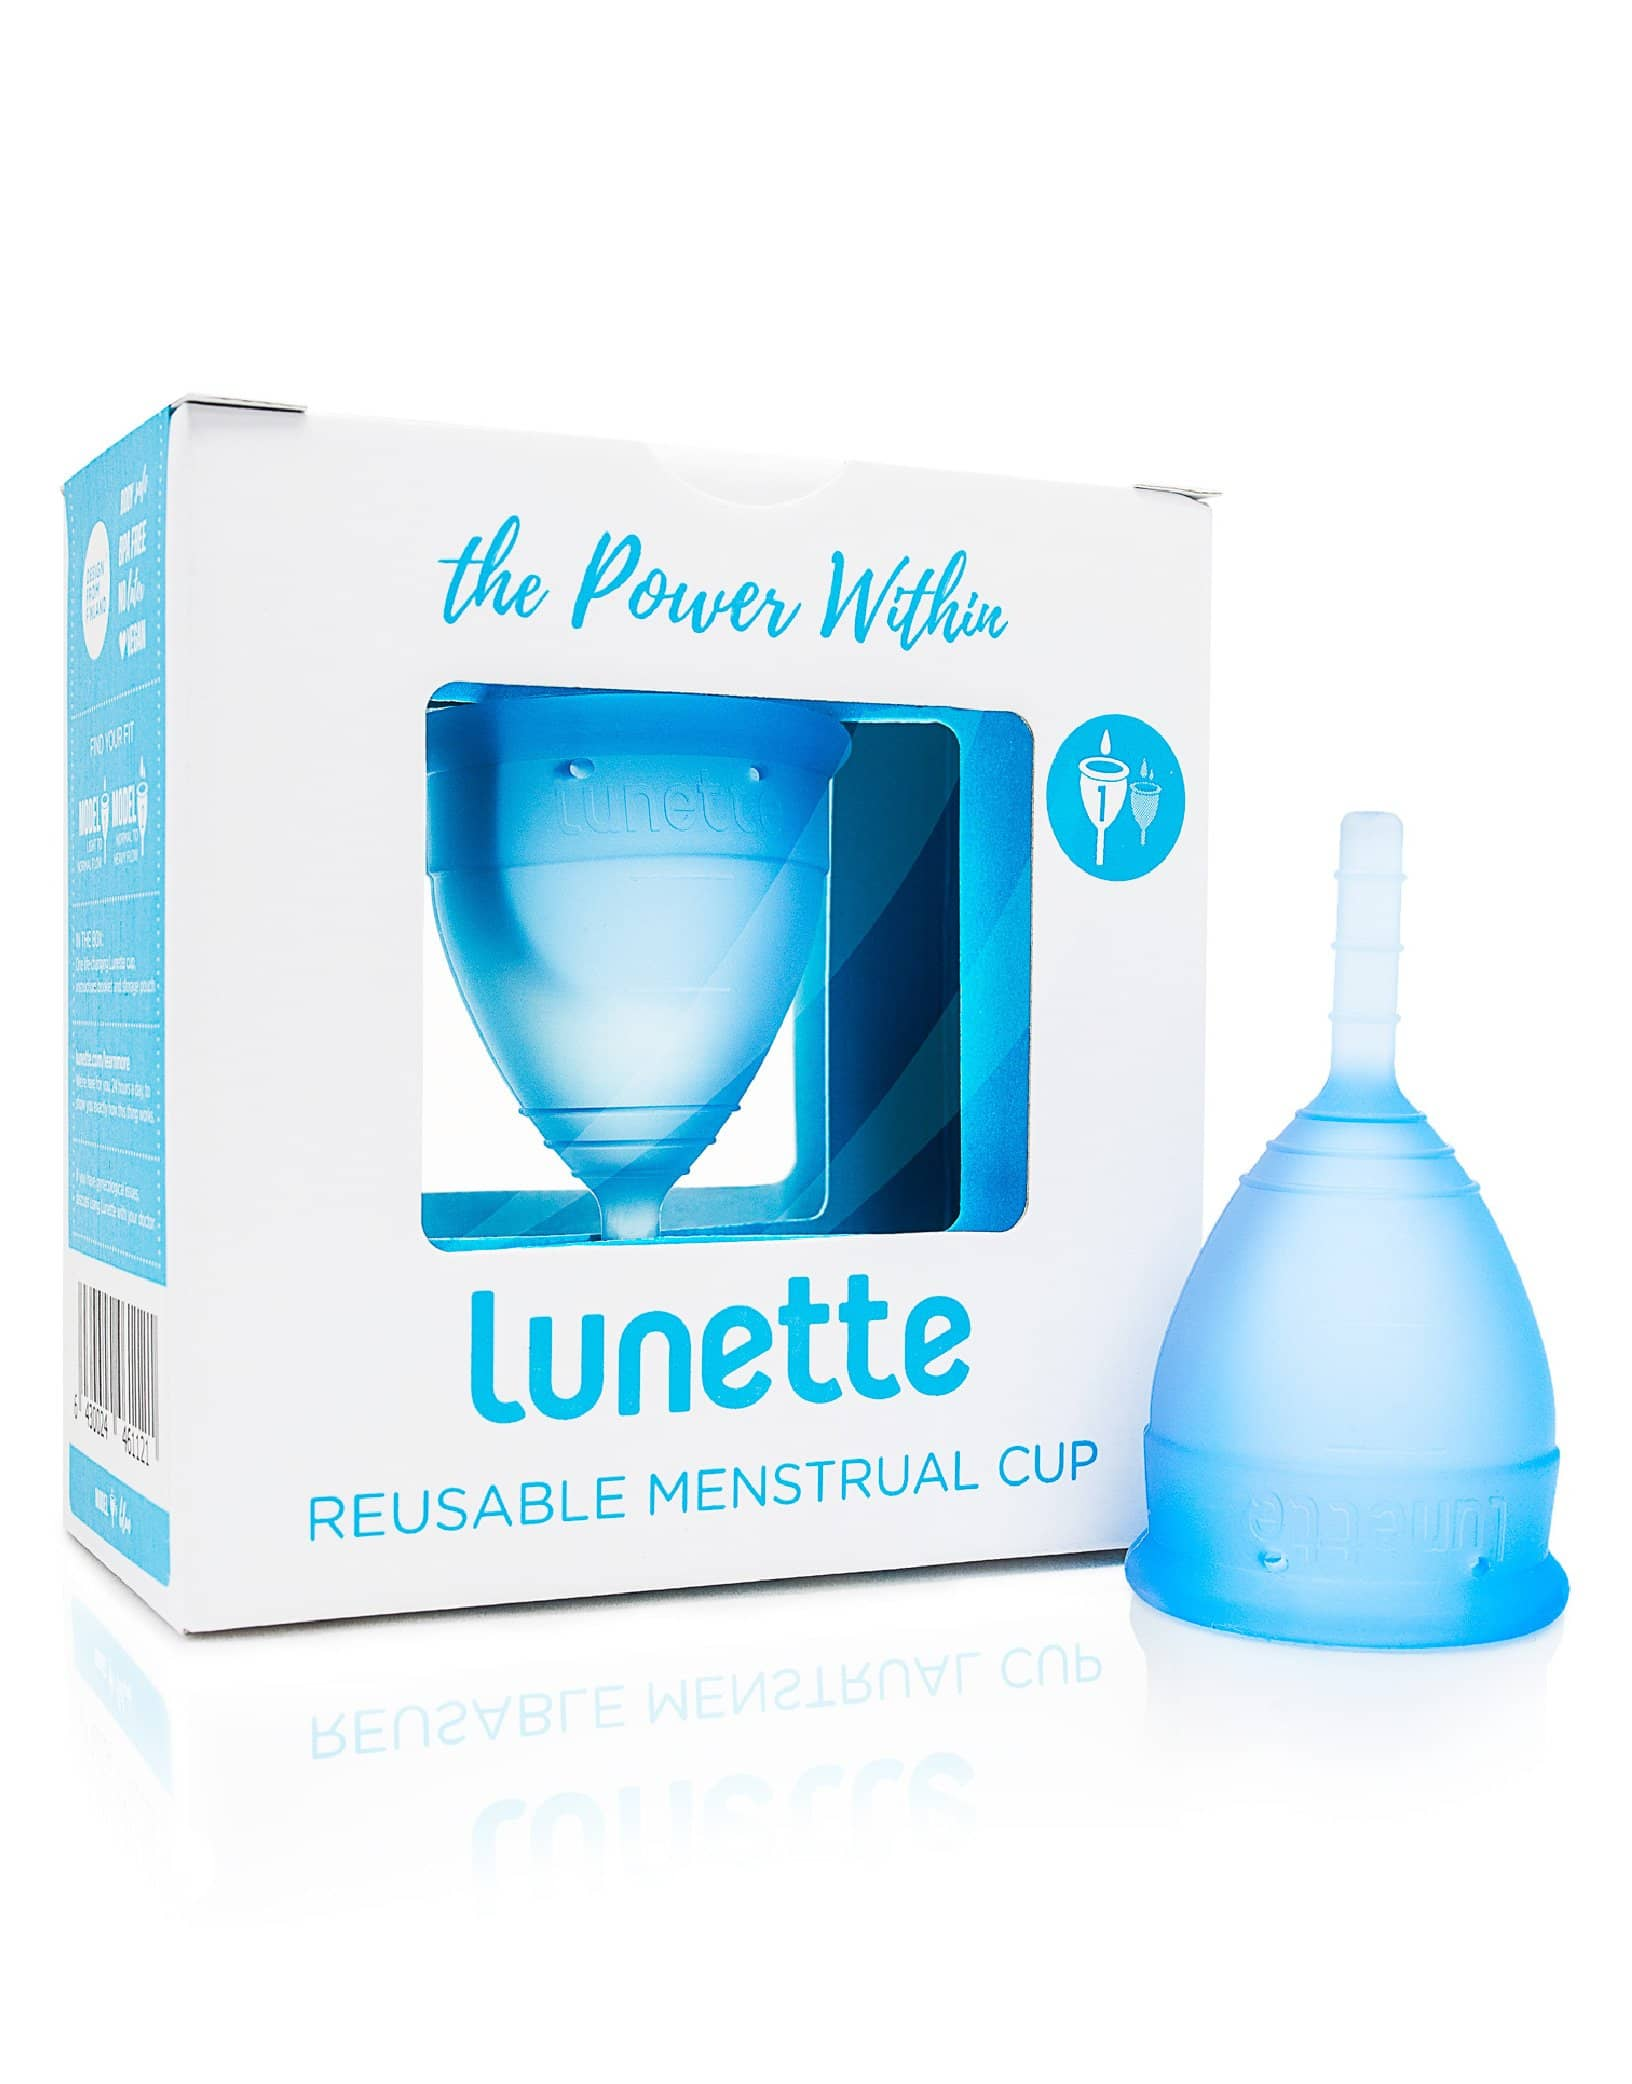 Lunette menstrual cup Blue Model 1